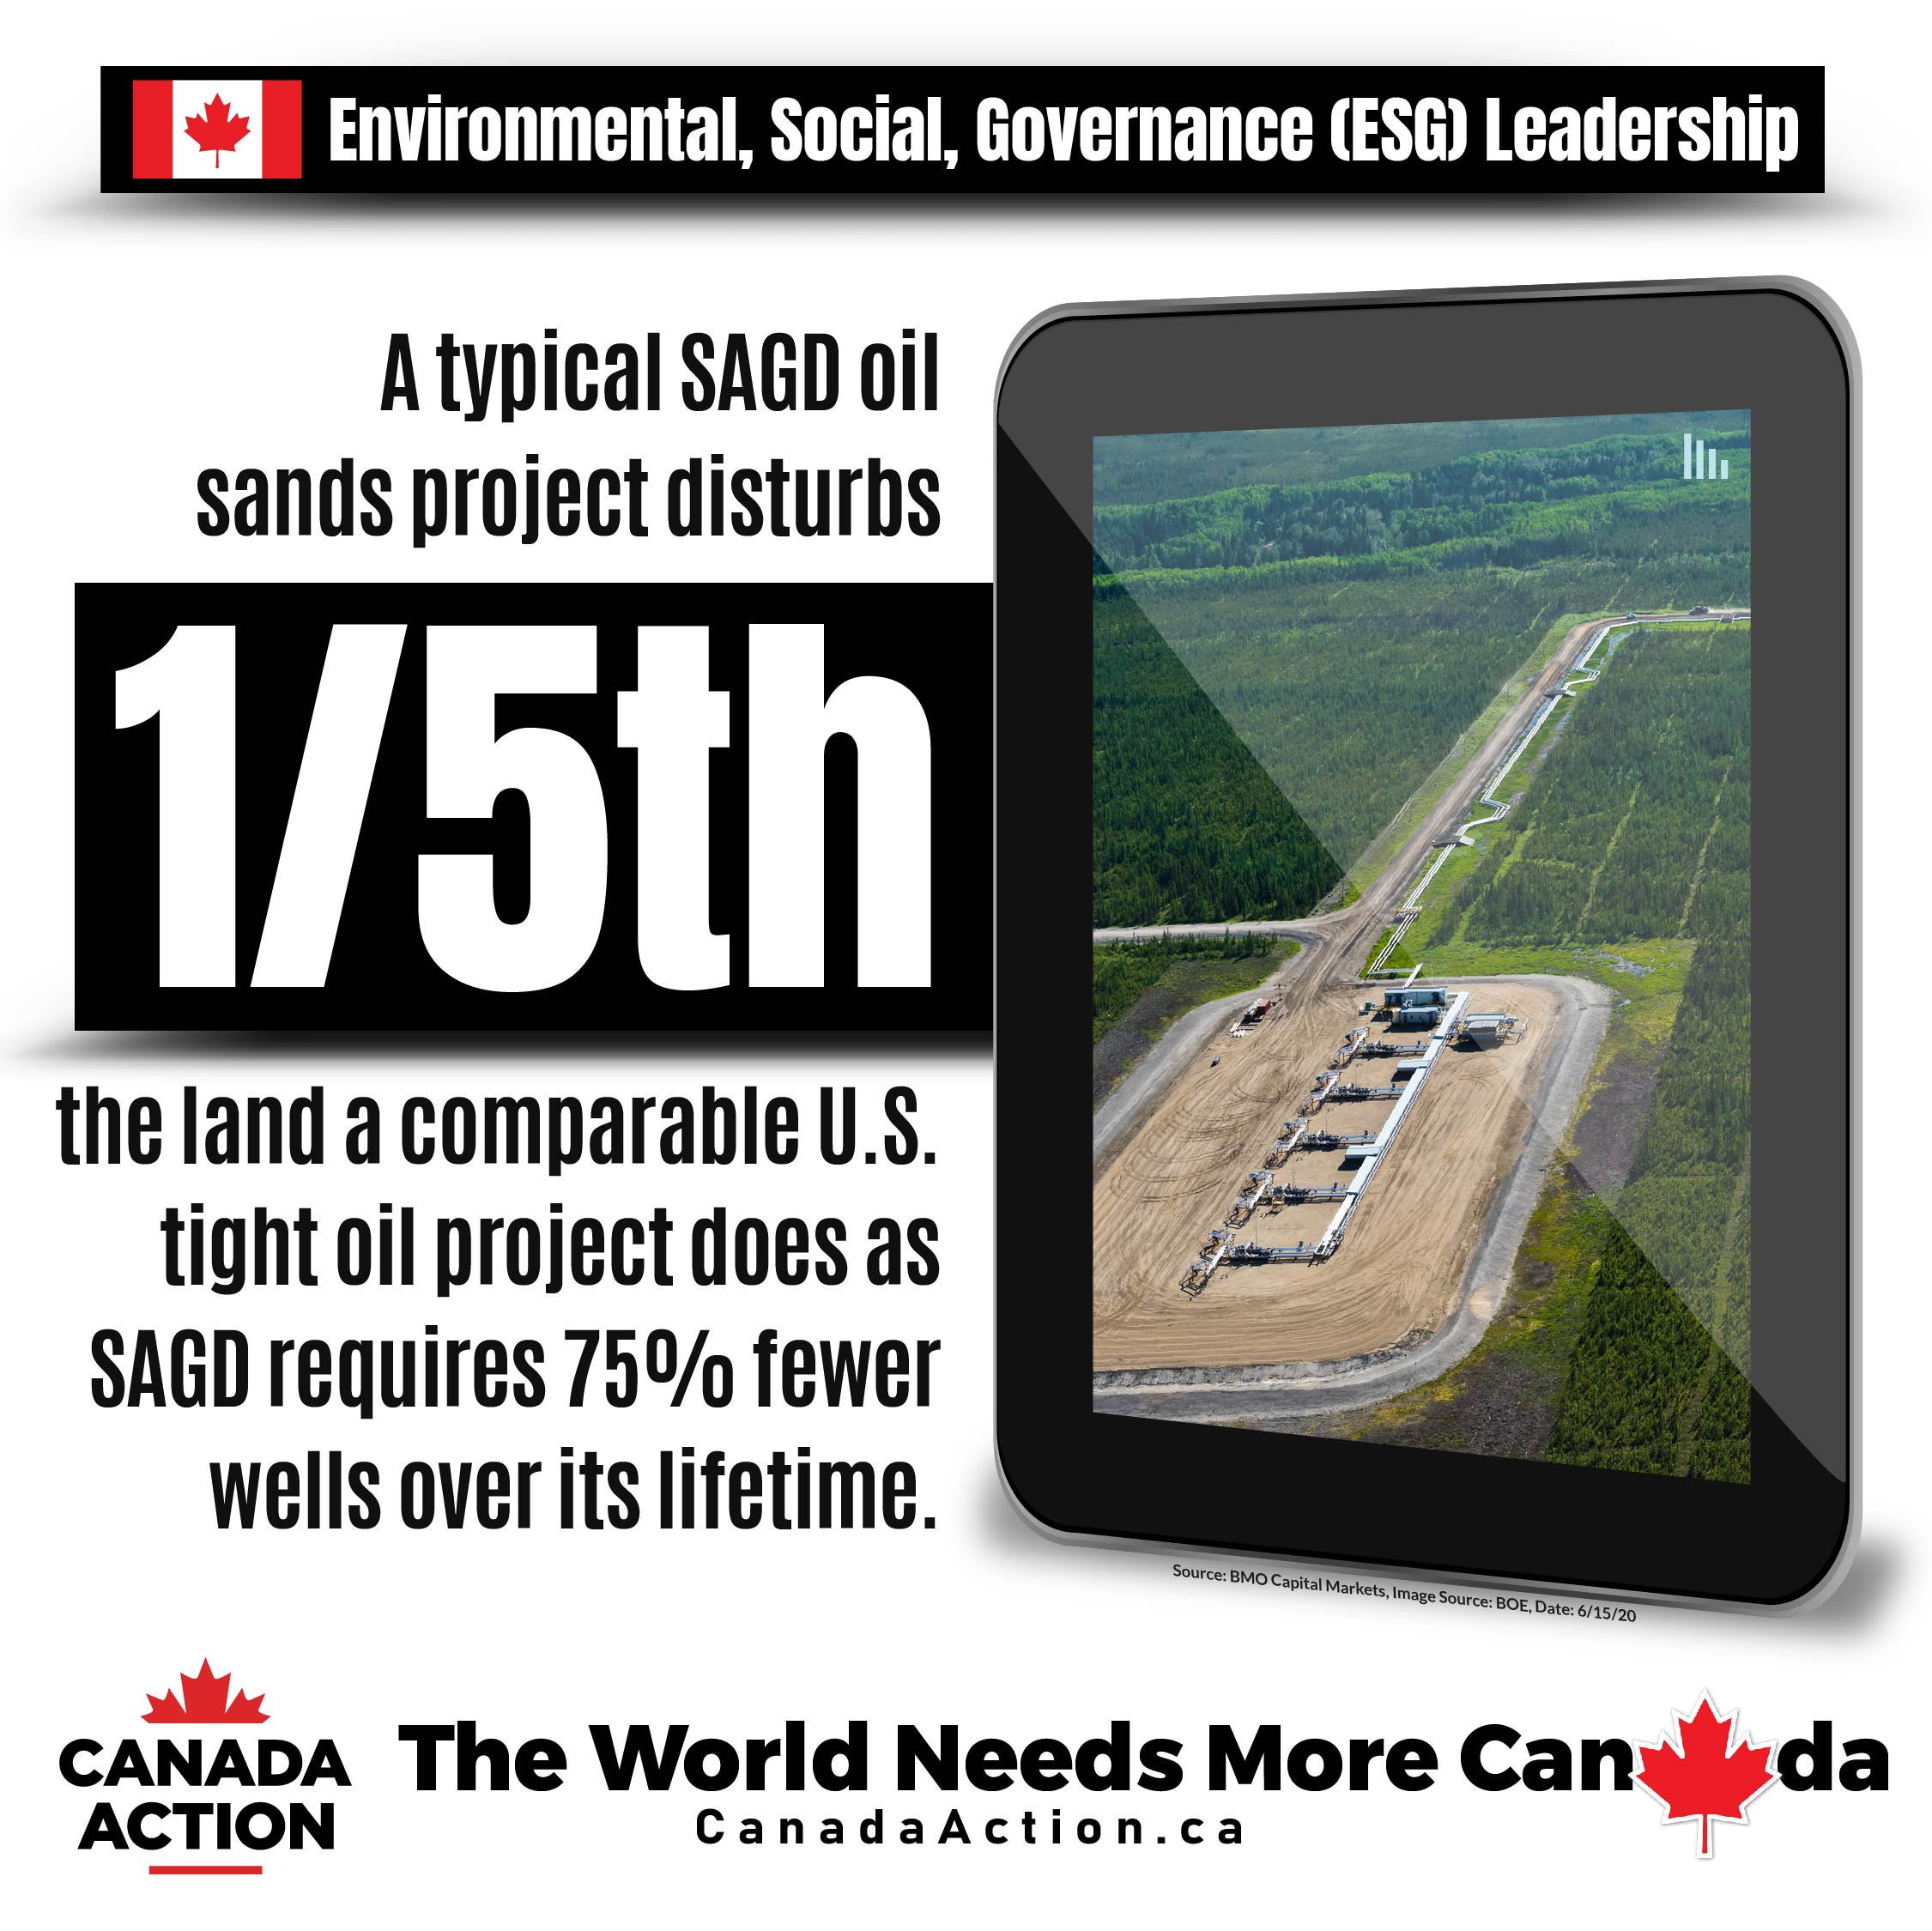 Canada's oil sands leases use less land than comparitive operations in USA